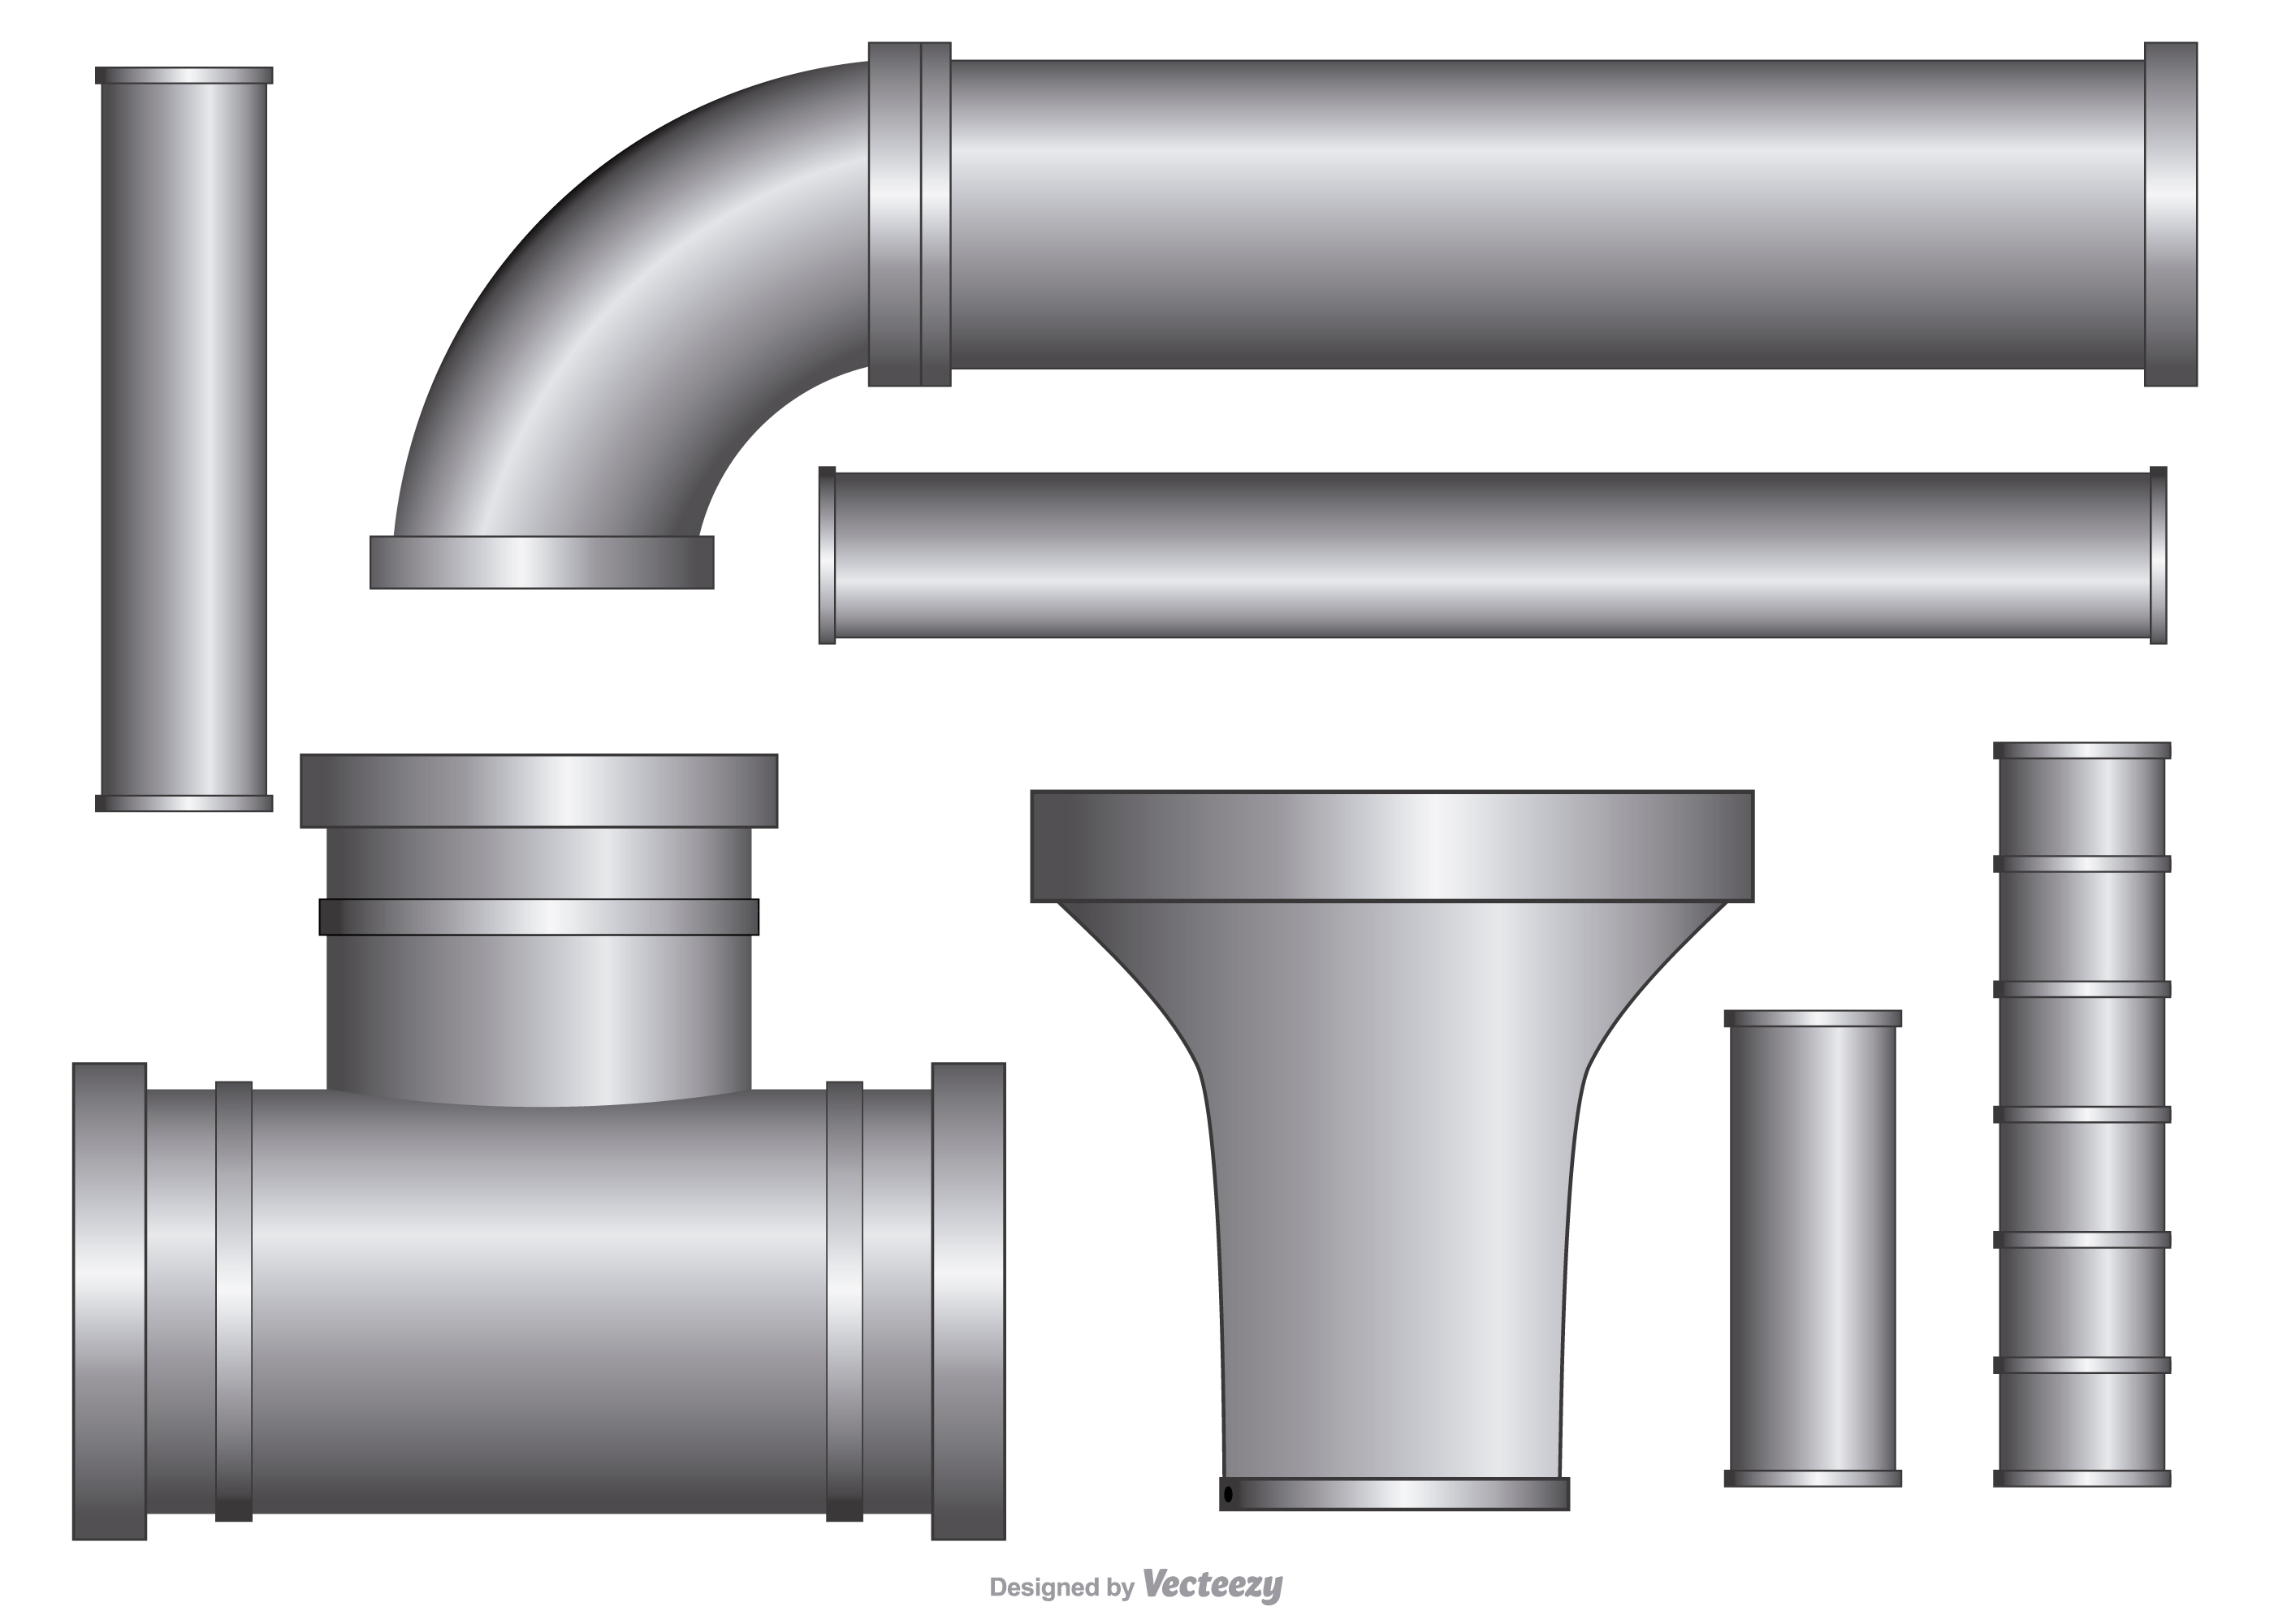 Water pipes free vector art 5158 free downloads for What pipes to use for plumbing